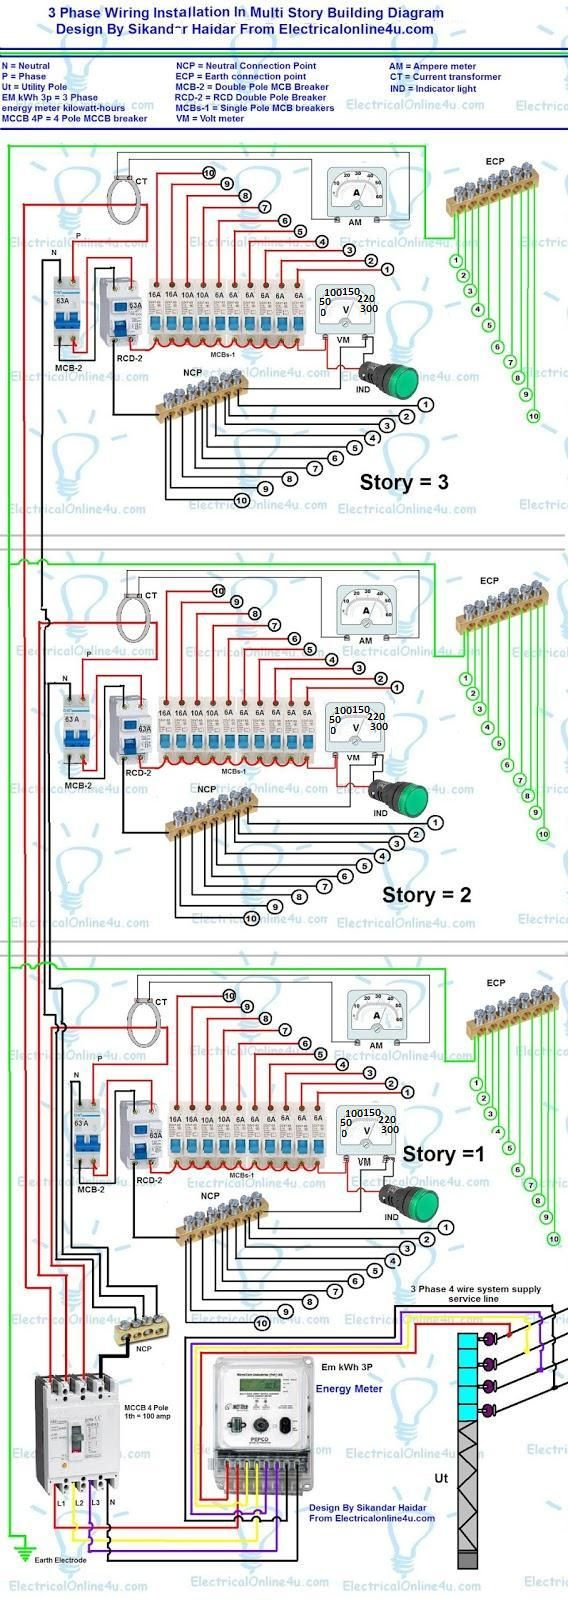 3 phase wiring installation diagram | Электропроводка ...